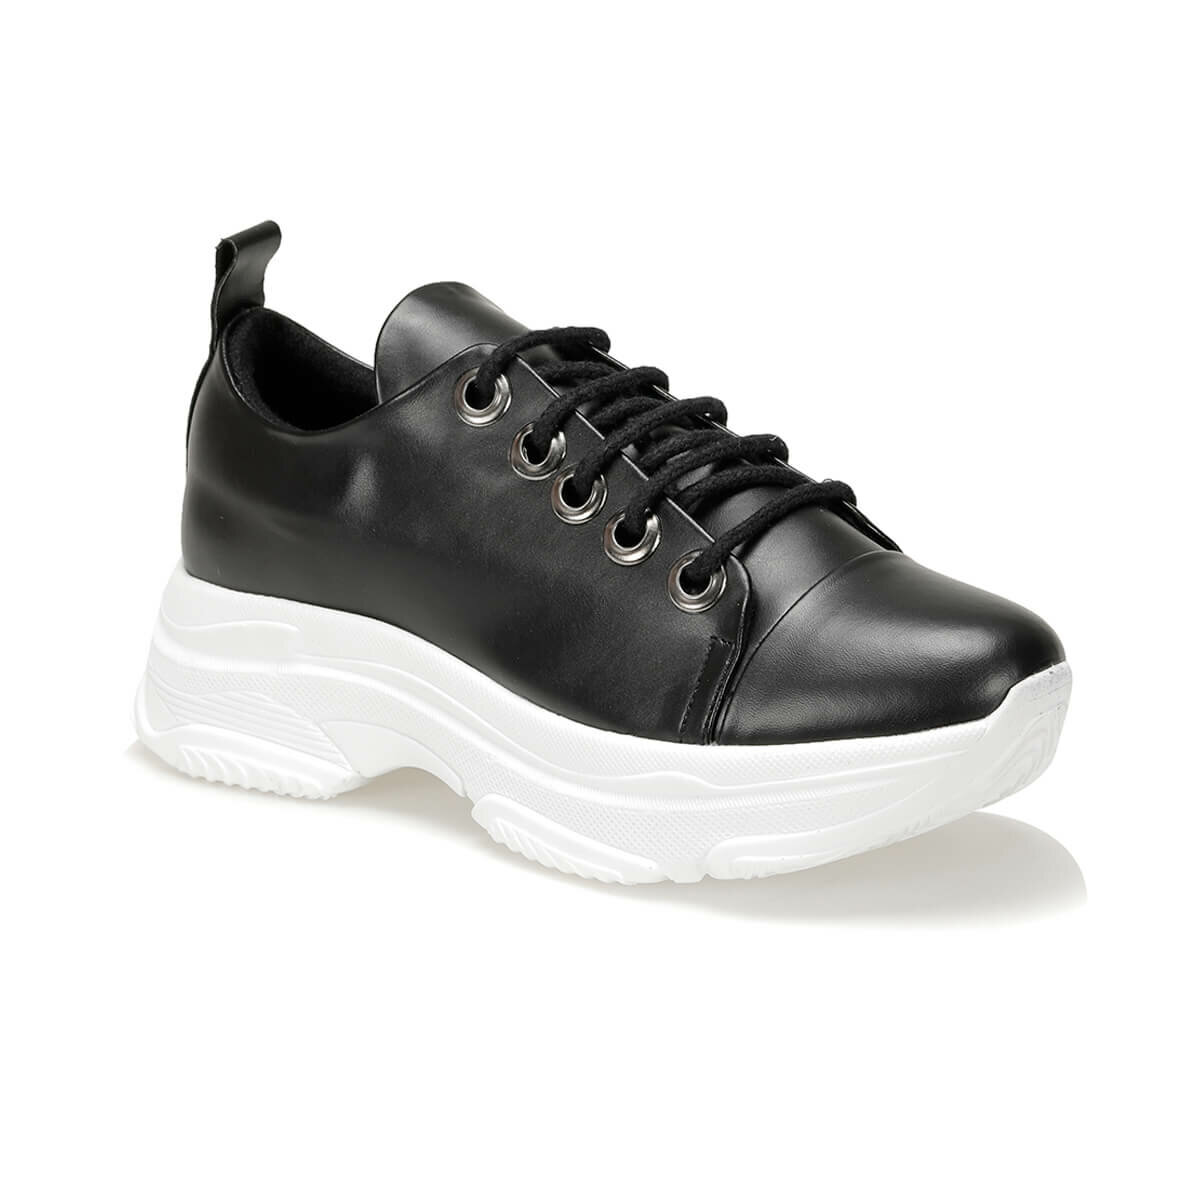 FLO FABRE85Z SKIN Black Women 'S Sneaker Shoes BUTIGO